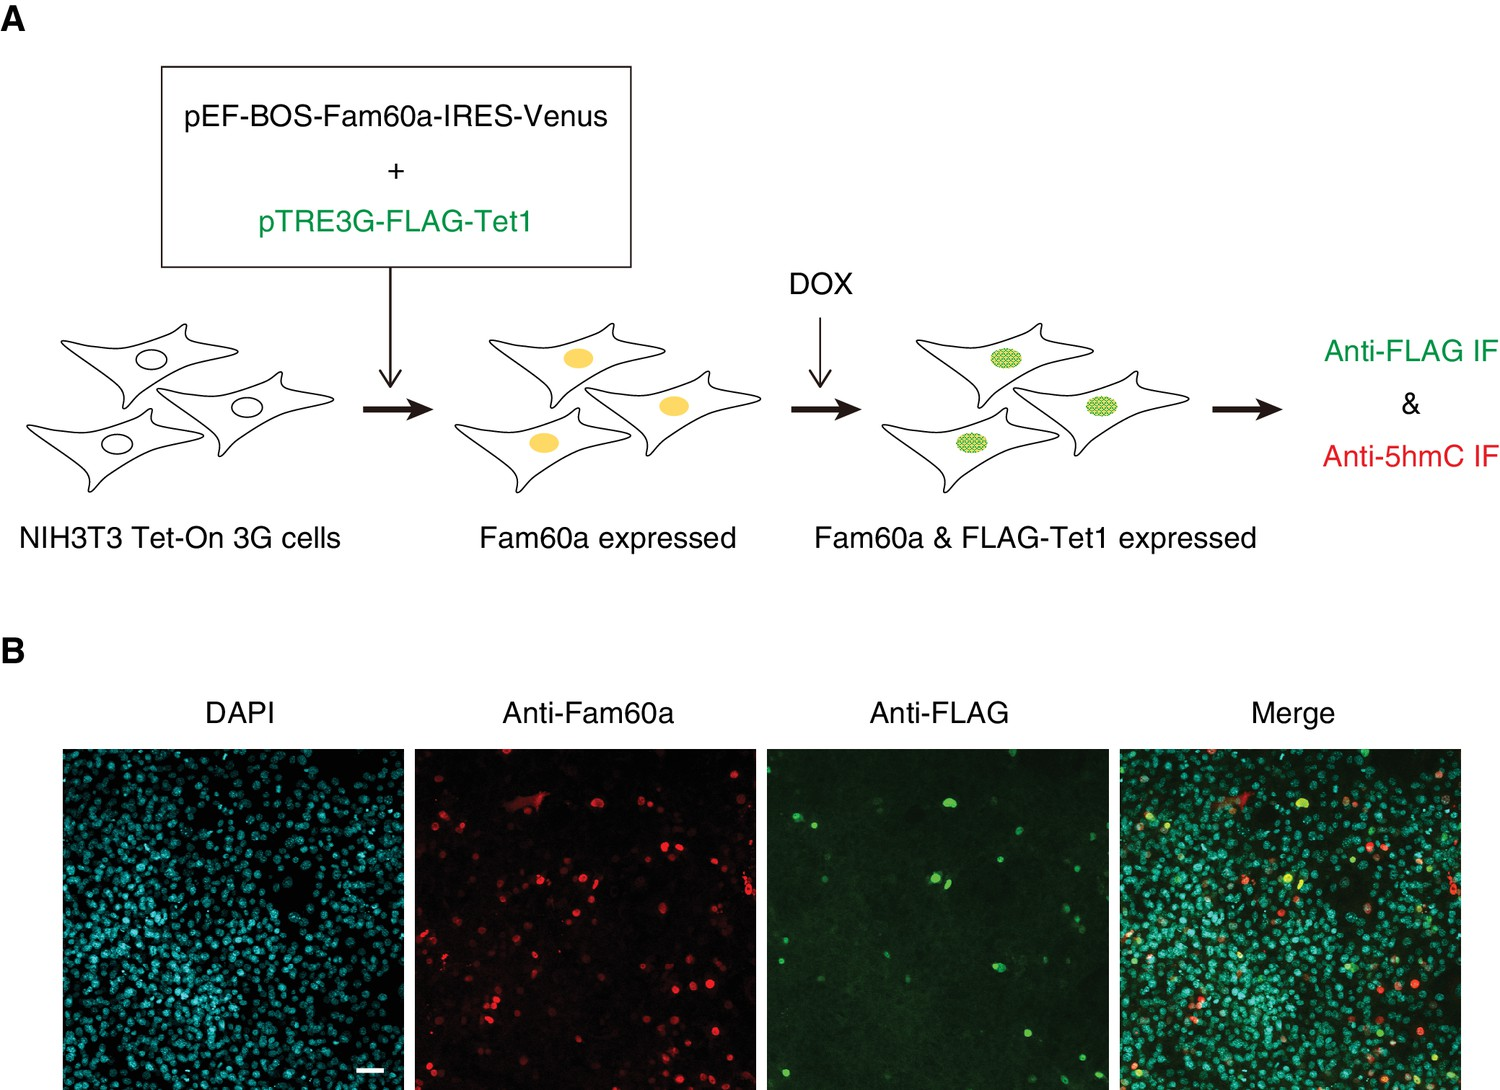 Loss Of Fam60a A Sin3a Subunit Results In Embryonic Lethality And Ford Fusion V6 3 0 Fuse 48 Diagram Experimental Strategy For Expression Venus Inducible Flag Tet1 Nih3t3 Cells